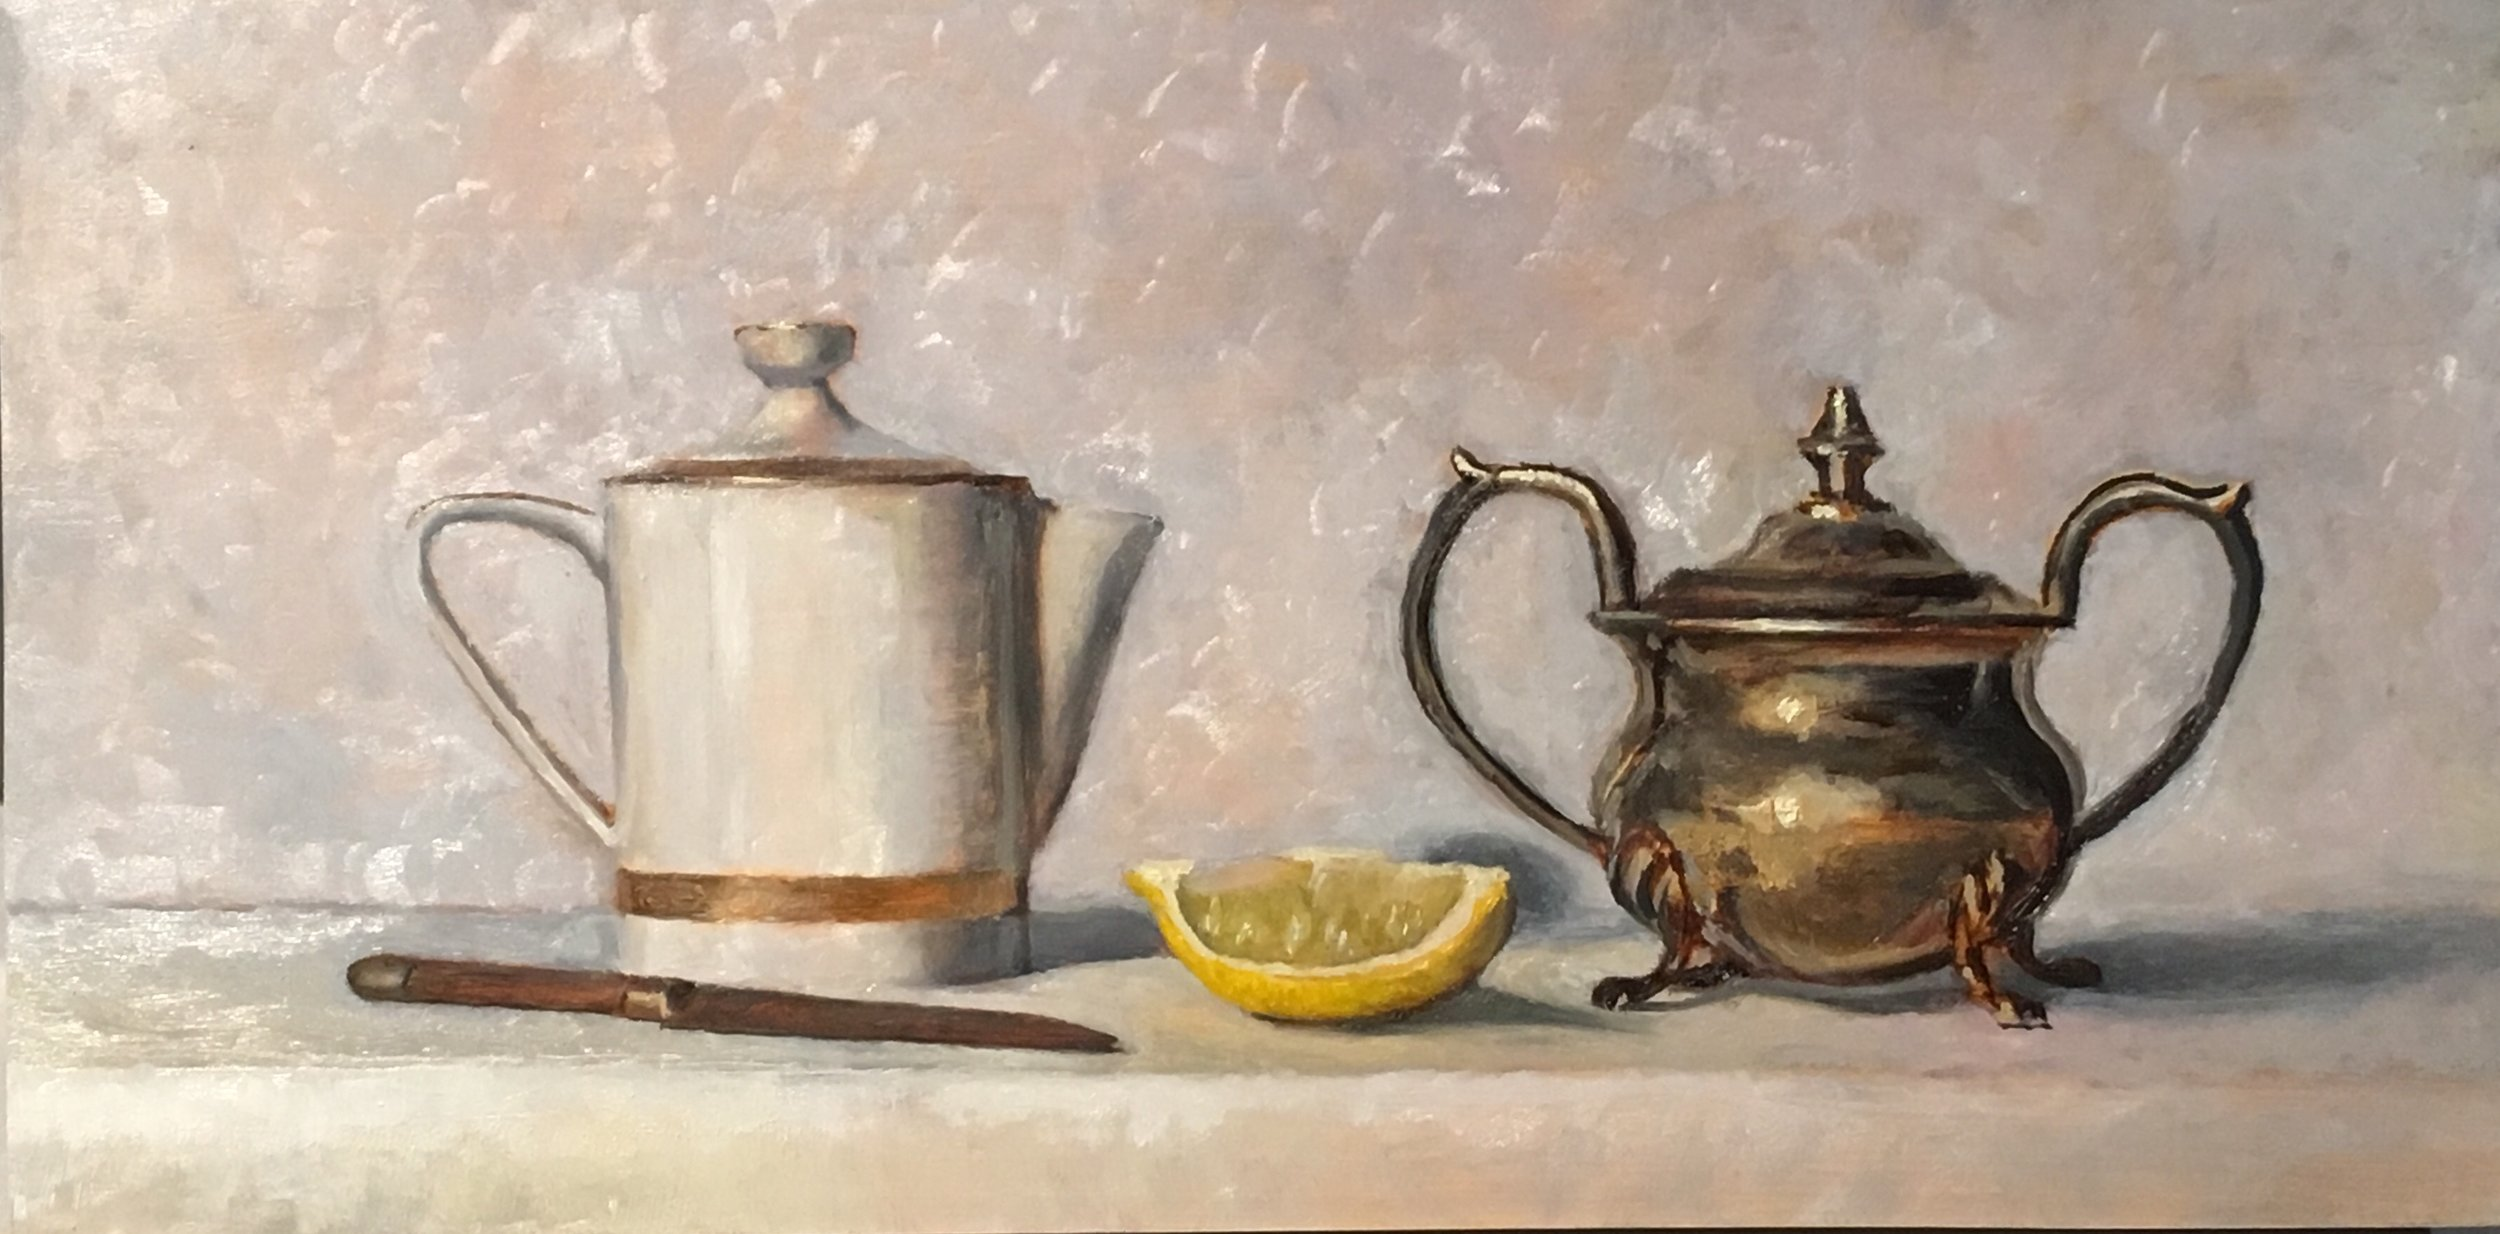 teapot, lemon and sugar bowl.jpg